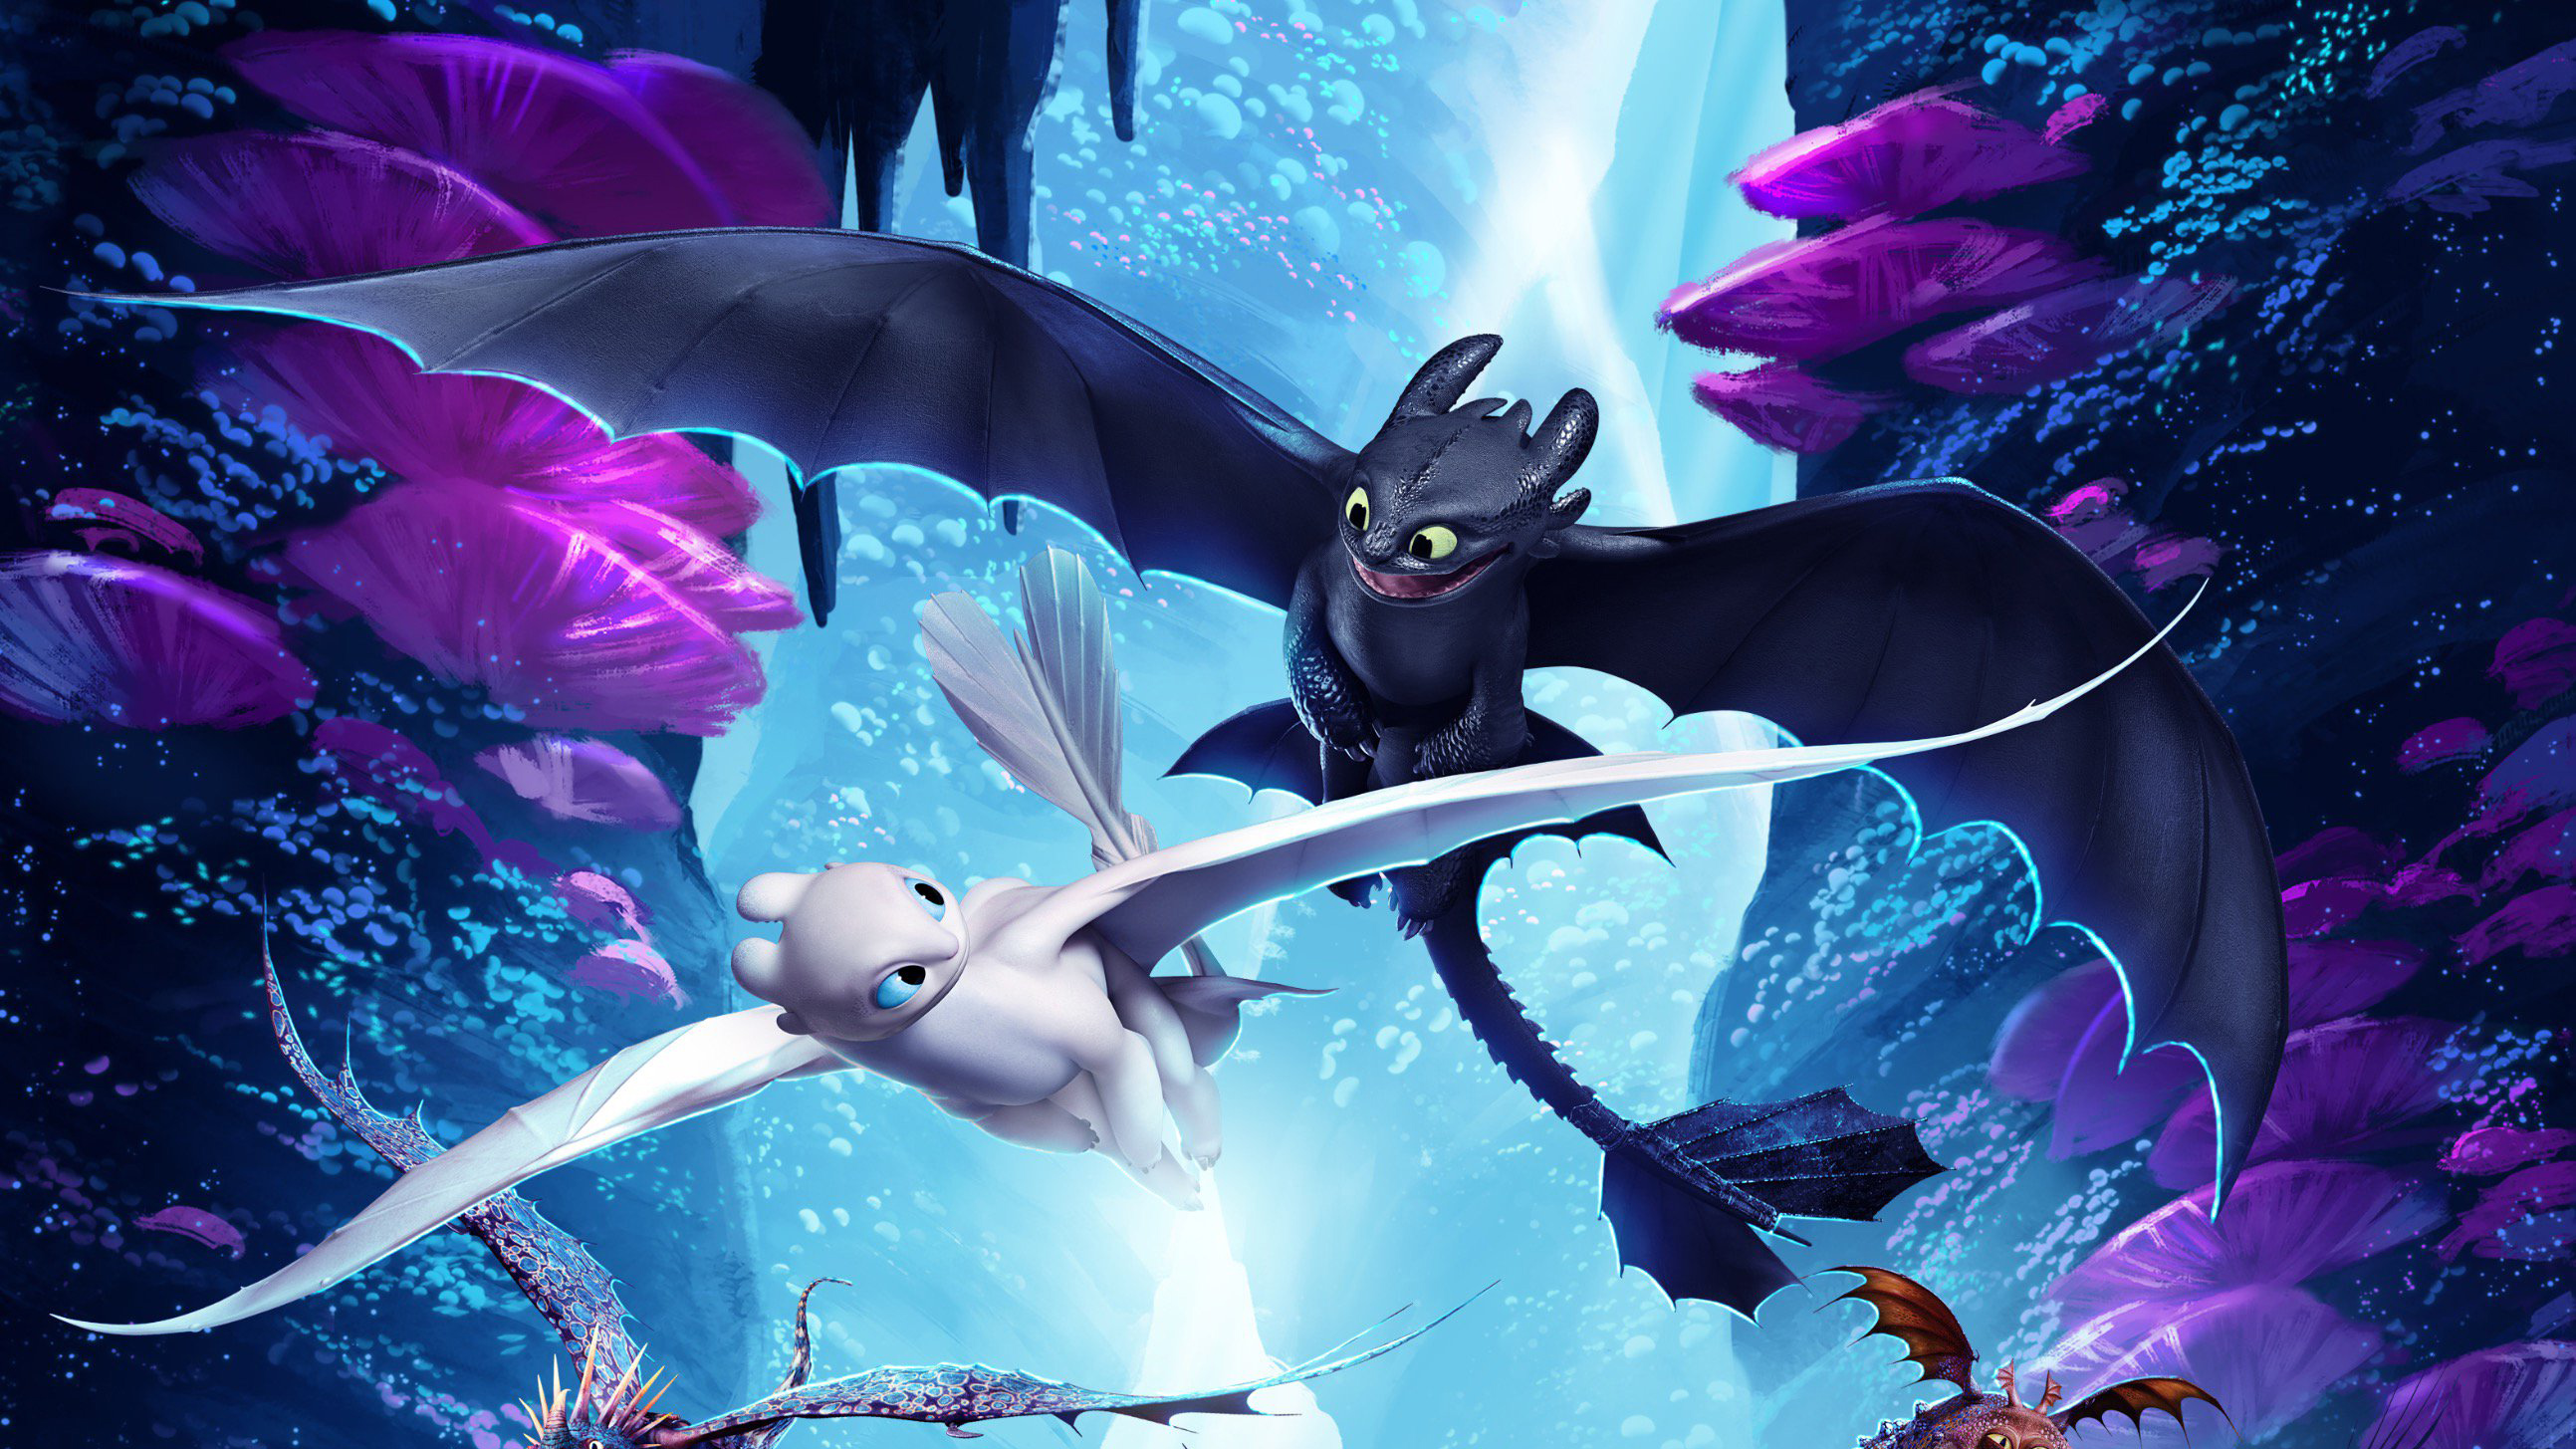 How To Train Your Dragon The Hidden World Night Fury And Light Fury Hd Movies 4k Wallpapers Images Backgrounds Photos And Pictures